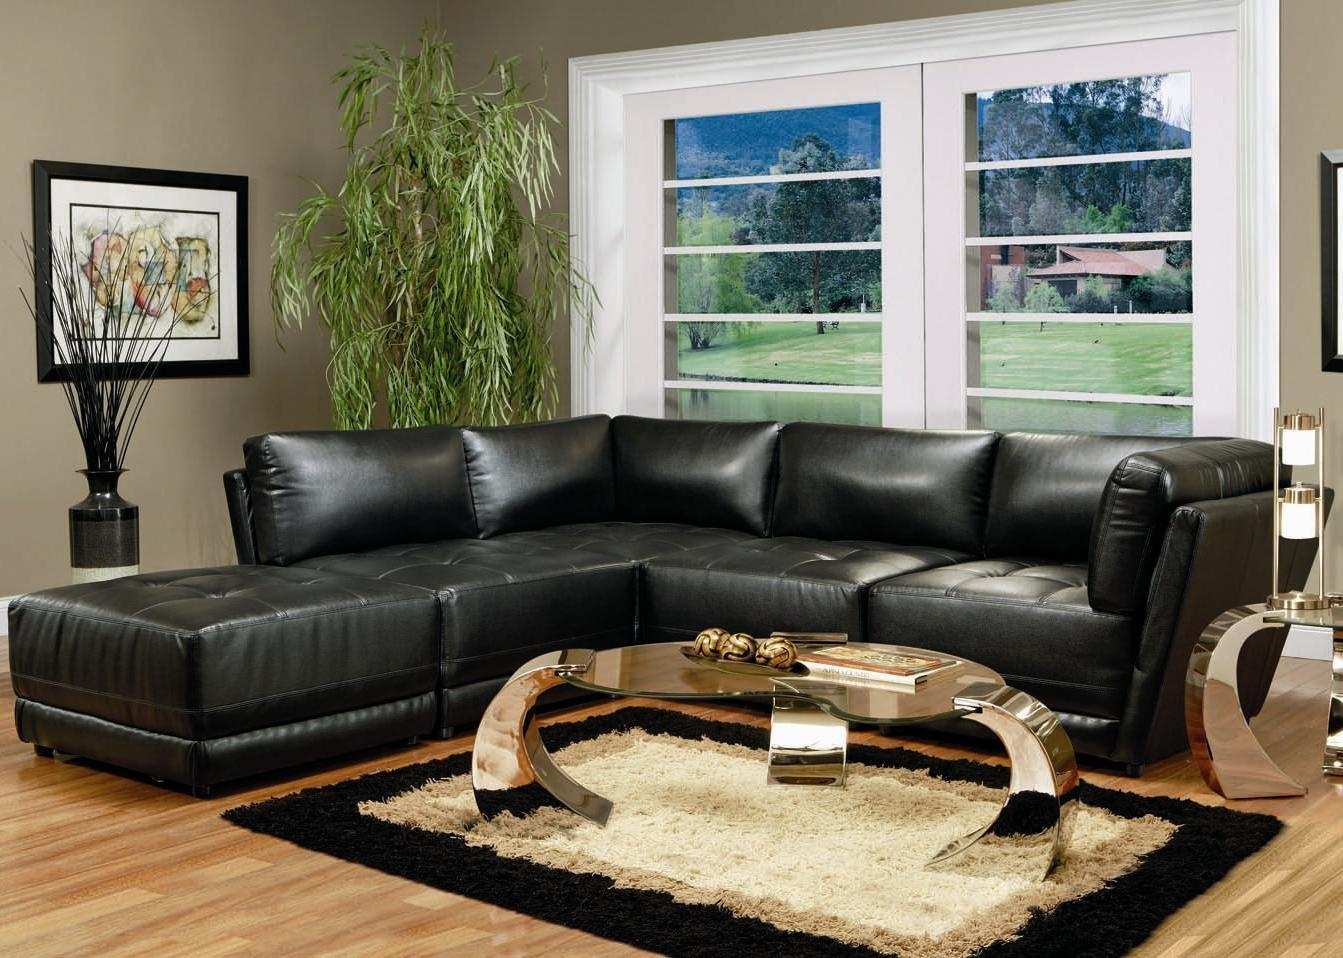 Modern Black Leather Modular Sofa Intended For Leather Modular Sectional Sofas (View 19 of 20)